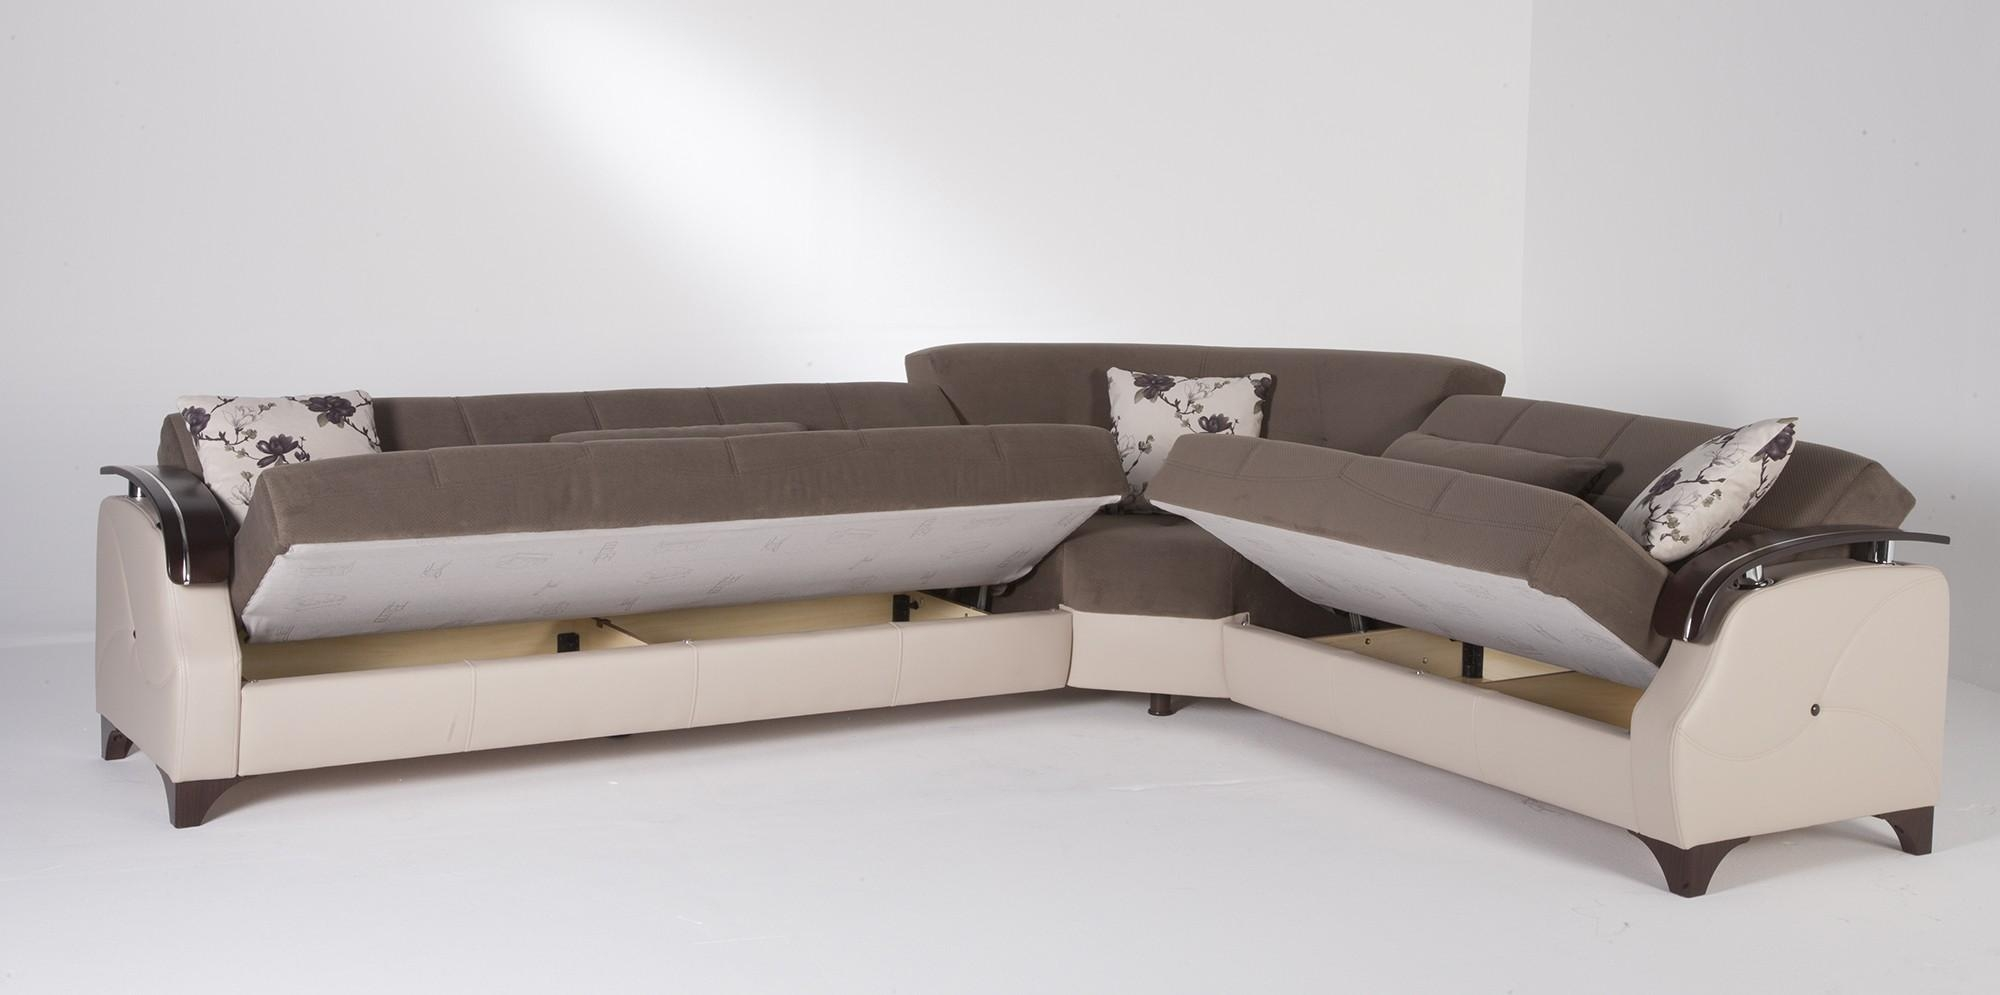 Sofas : Marvelous Chaise Sofa Small Sectional Sofa Couch Bed Within Queen Size Sofa Bed Sheets (View 2 of 21)